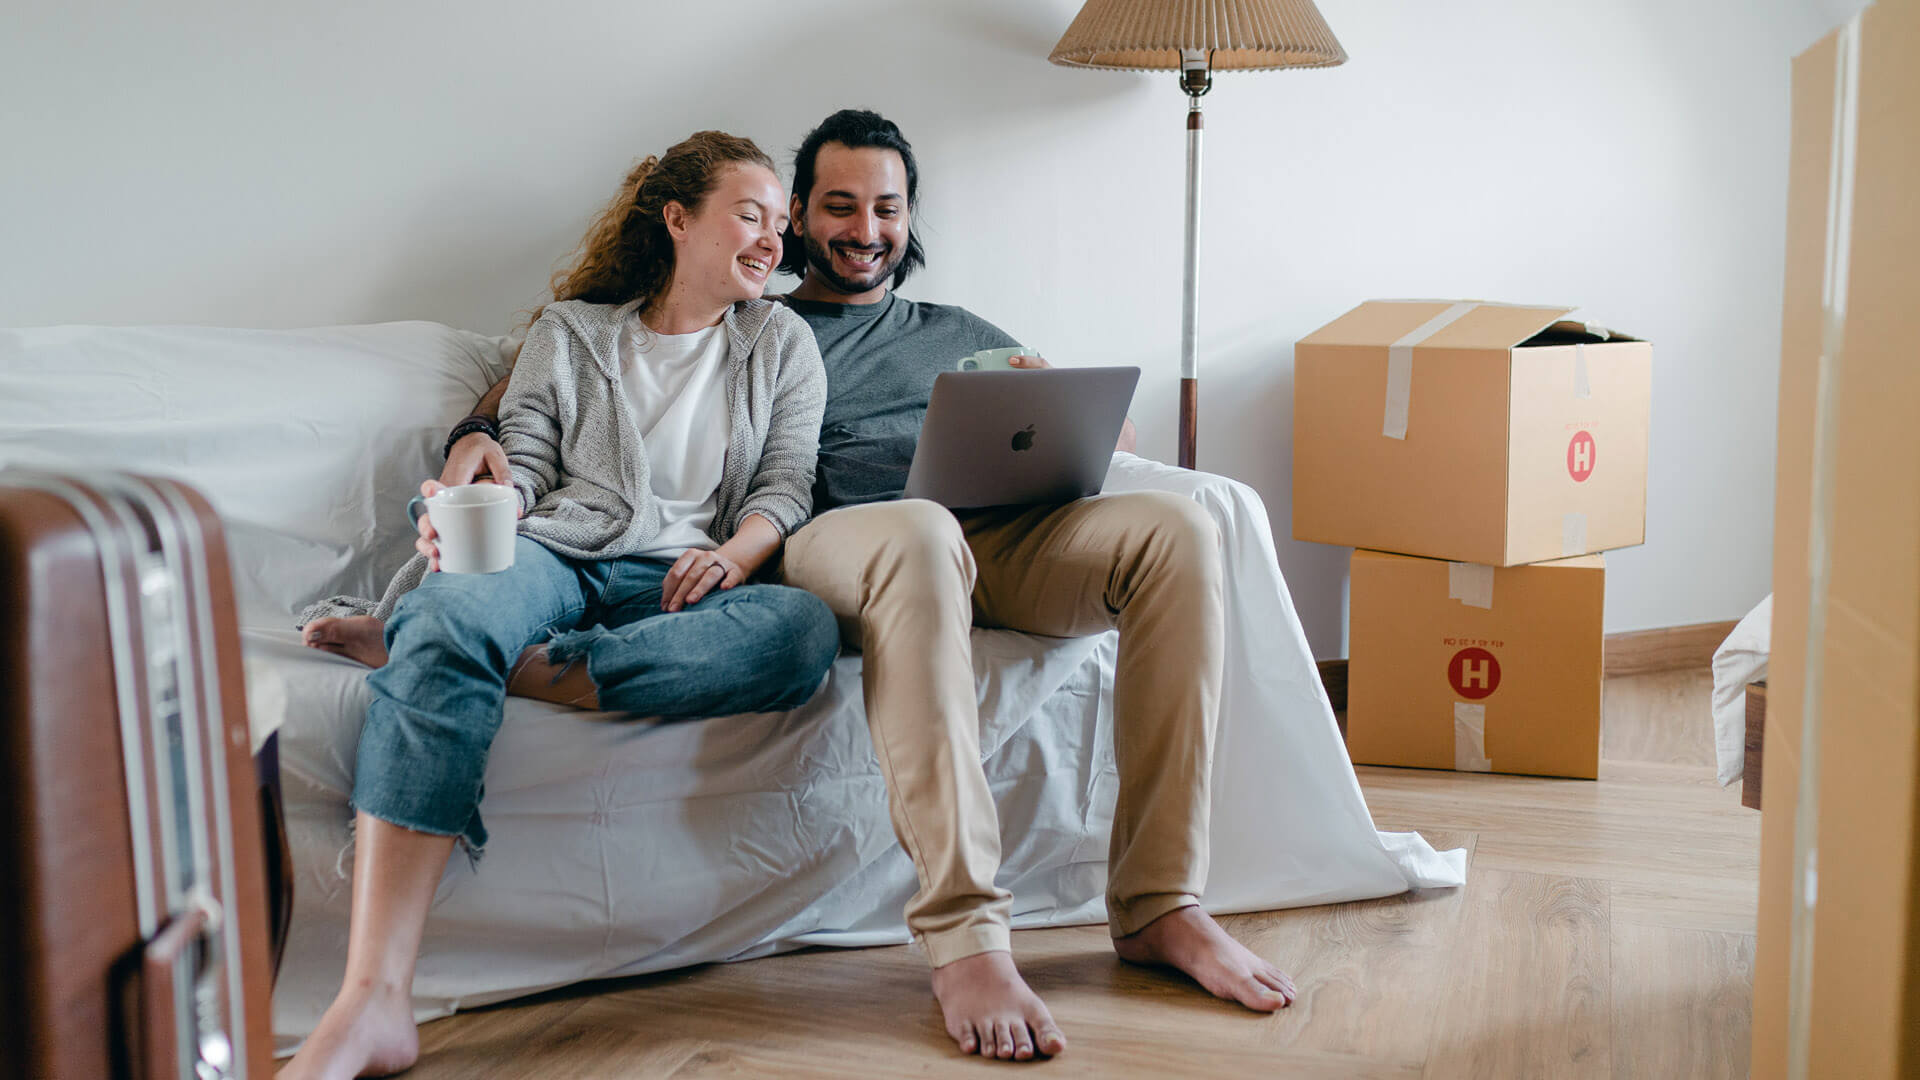 An image of a couple on a couch looking at common closing costs in Florida for buyers of real estate.